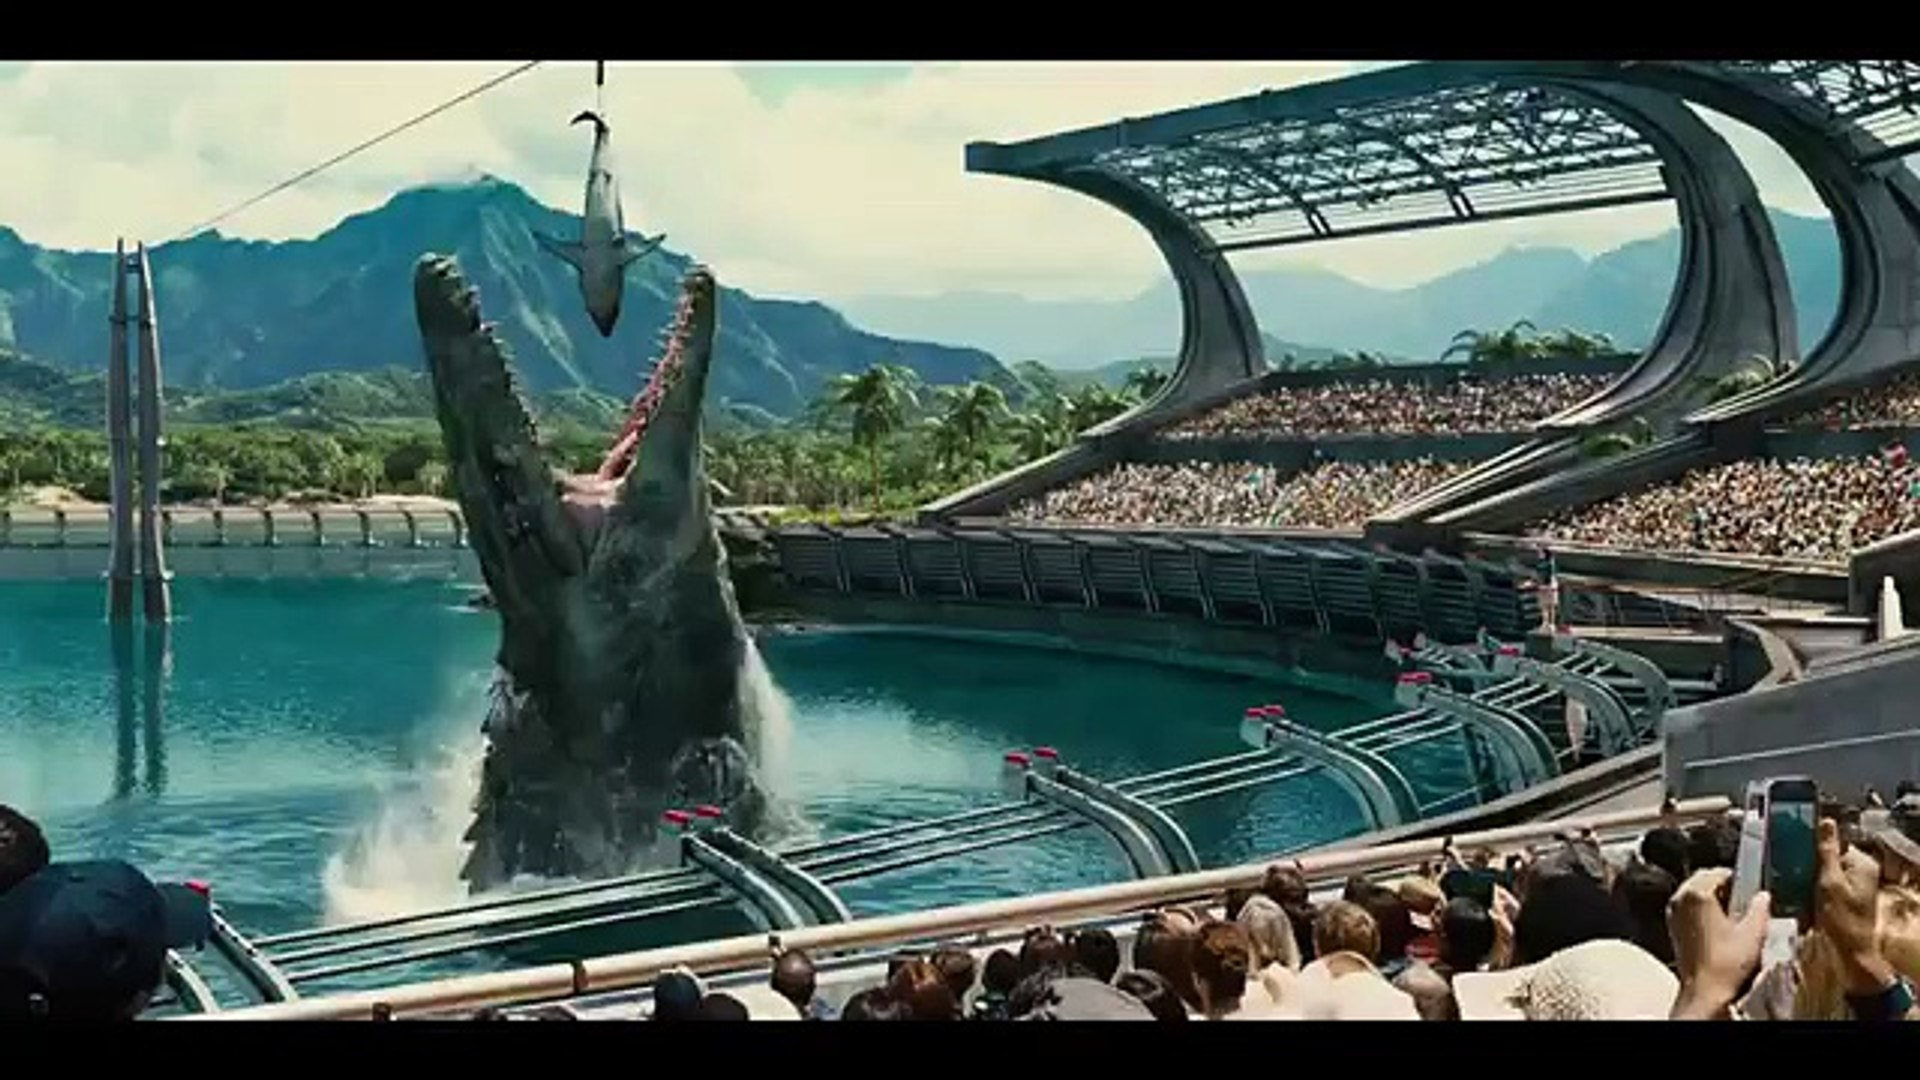 Jurassic World Official Super Bowl TV Spot (2015) - New jurassic park movie - movie trailers - Chris